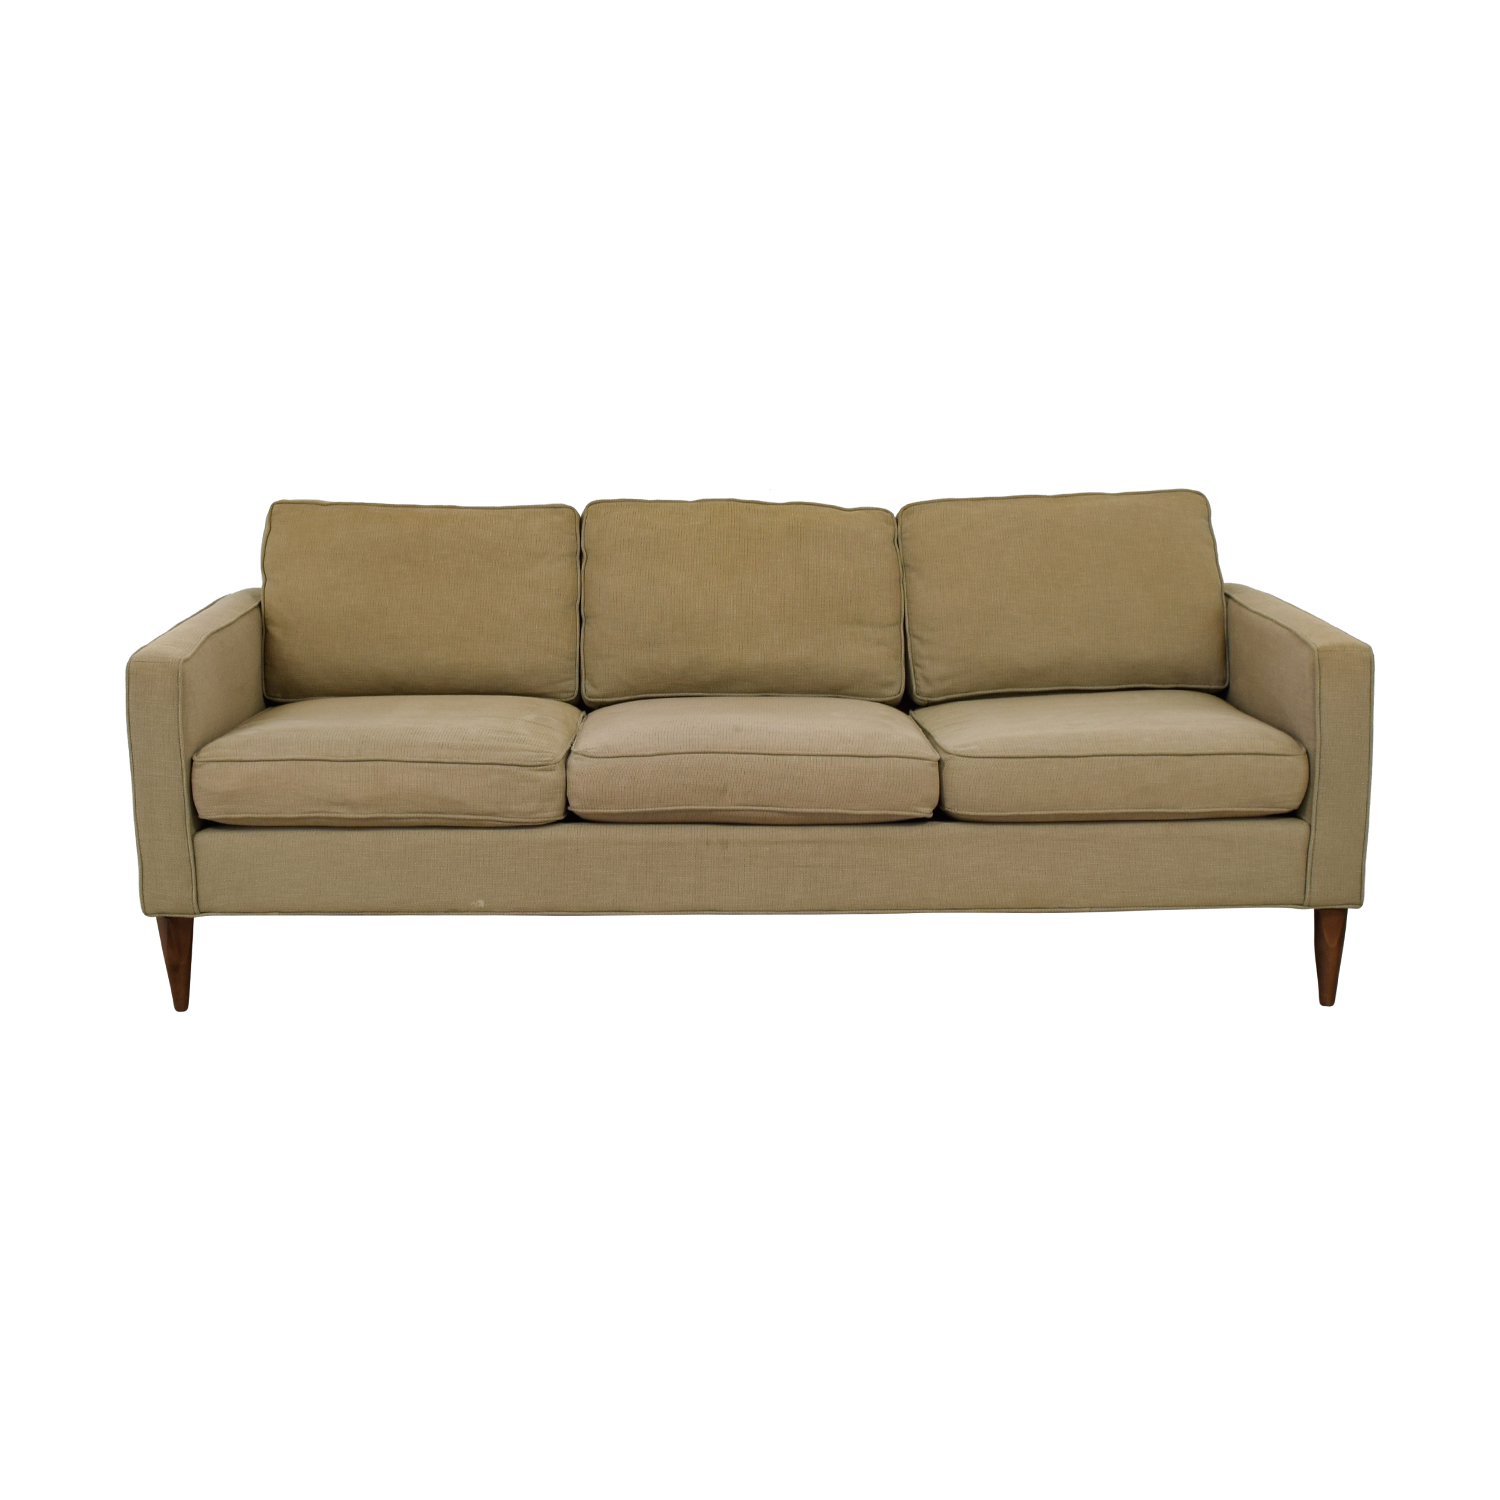 buy Room & Board Beige Three-Cushion Sofa Room & Board